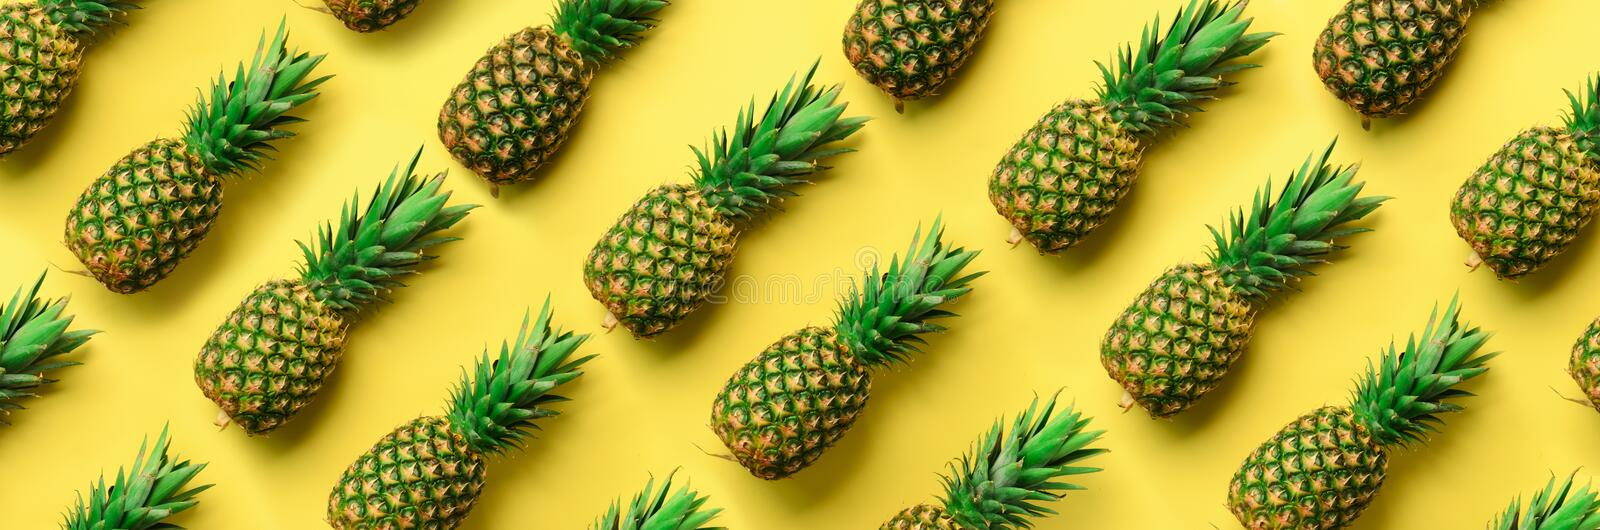 Chaotic pineapple pattern for minimal style. Top View. Pop art design, creative concept. Copy Space. Banner. Fresh. Pineapples on yellow background stock image